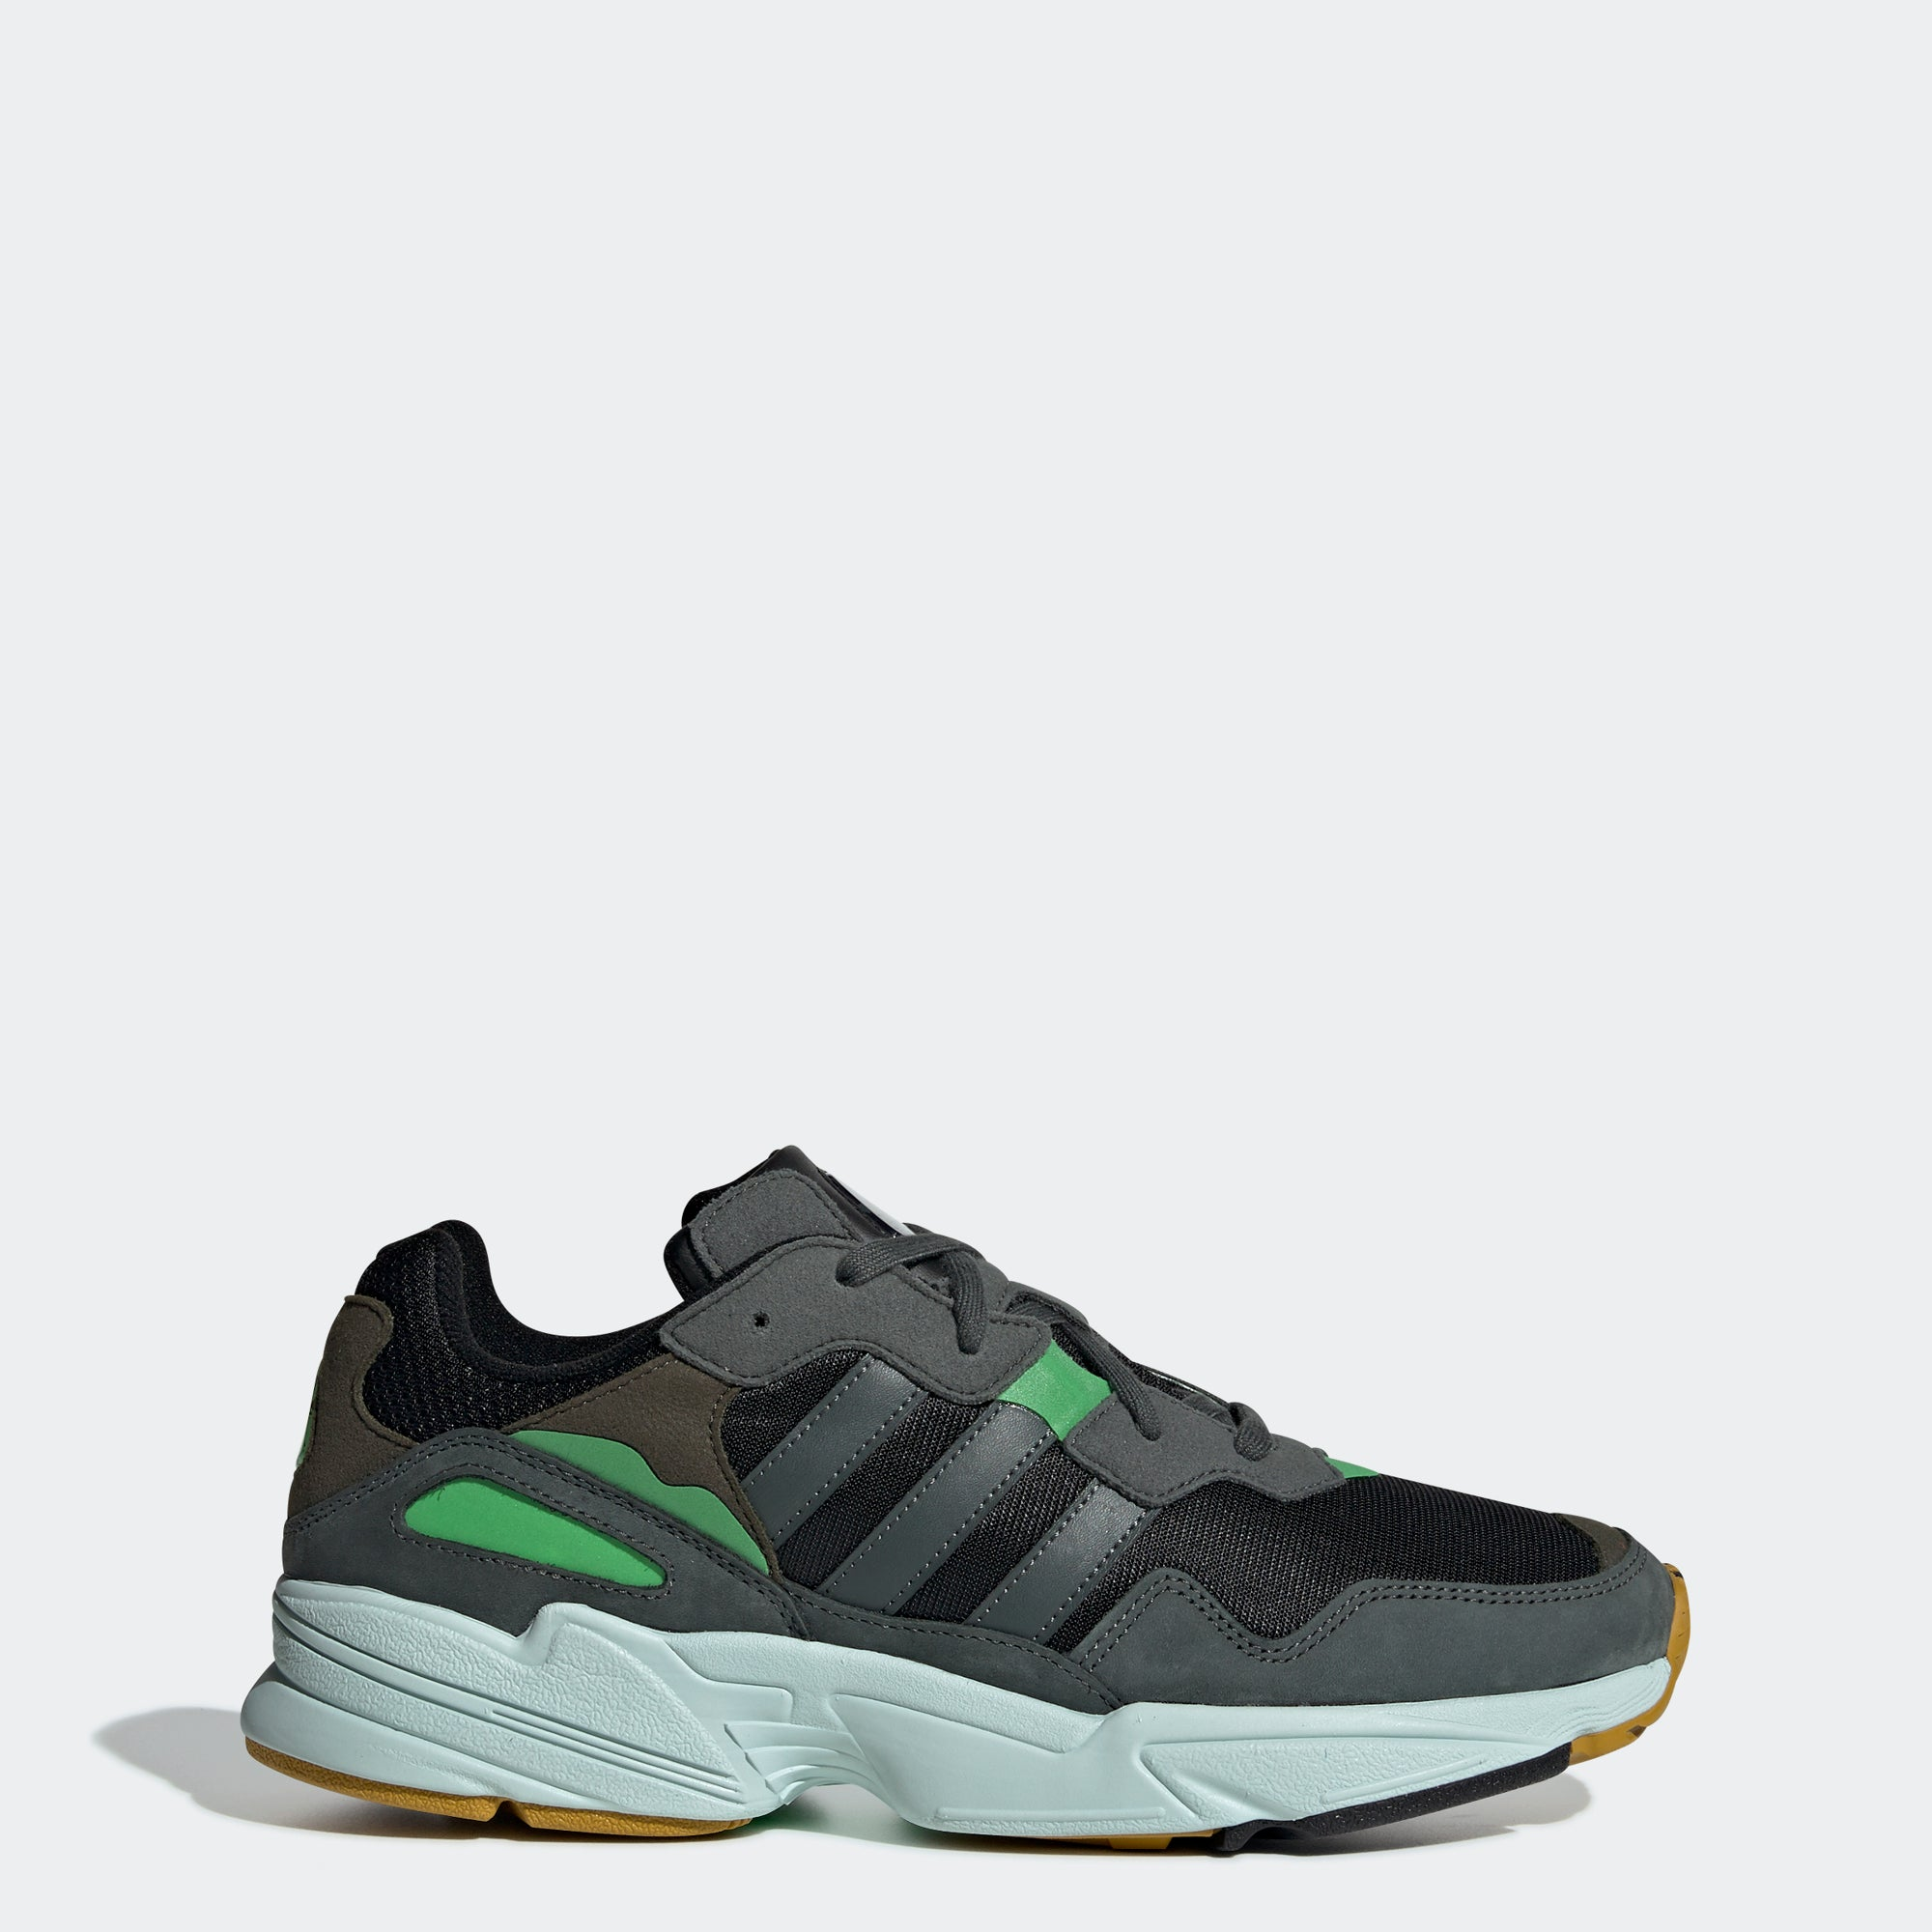 eec584793 adidas Yung-96 Shoes Legend Ivy F35018